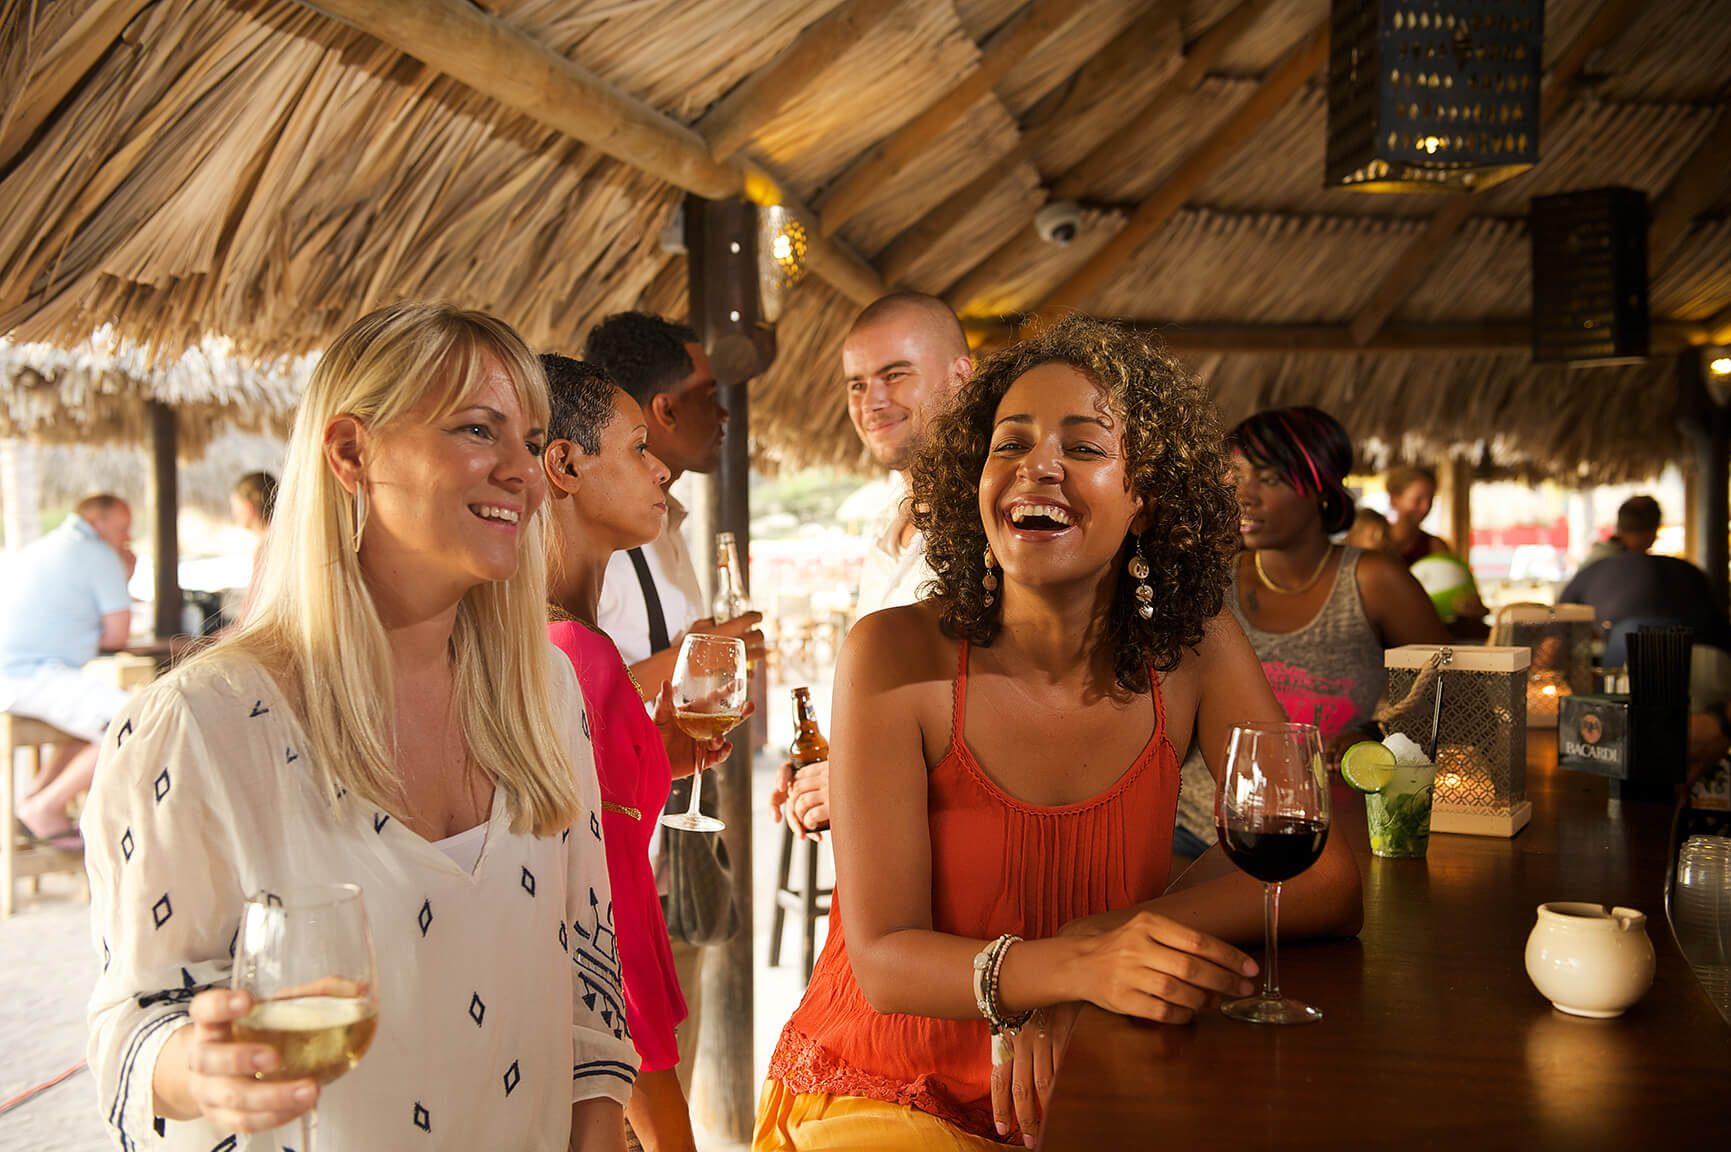 Visitors at the Zanzibar beach and Restaurant are having a good time.